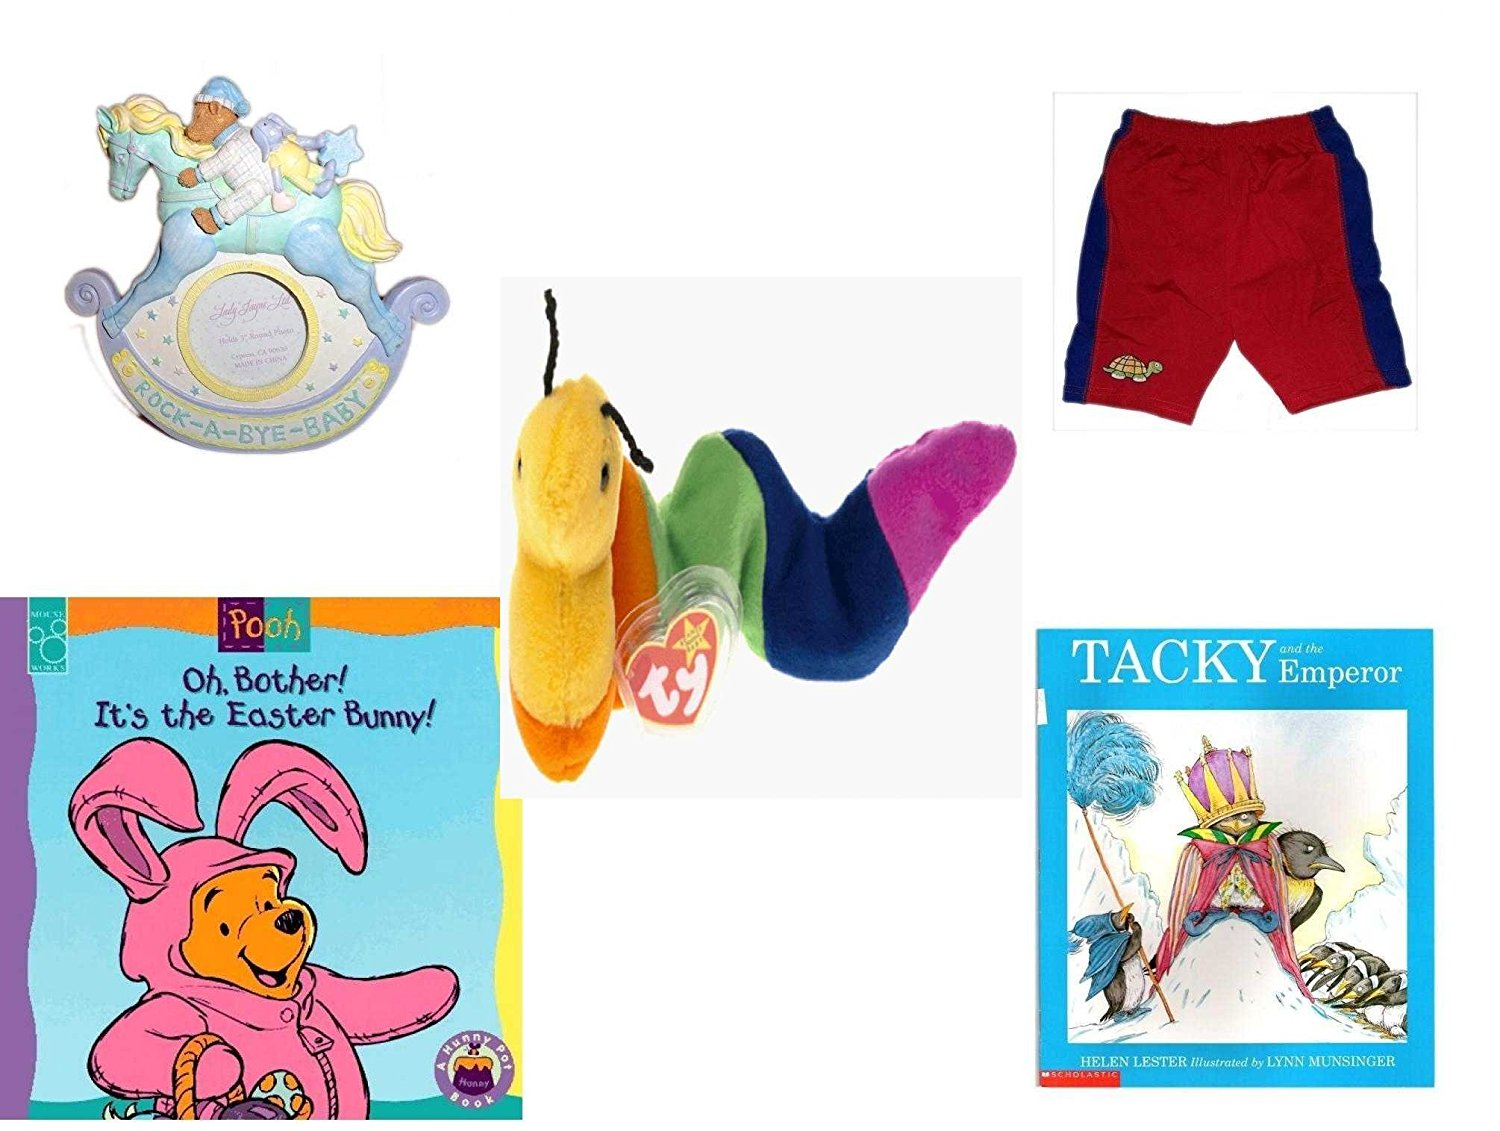 "Children's Gift Bundle - Ages 0-2 [5 Piece] - Rock-A-Bye-Baby - Rocking Horse Photo Frame 3"" Round - Circo Infant Boys Swim Shorts Gator Red/Blue Size S 6 Months 13-18 lbs - TY Beanie Baby INCH the"